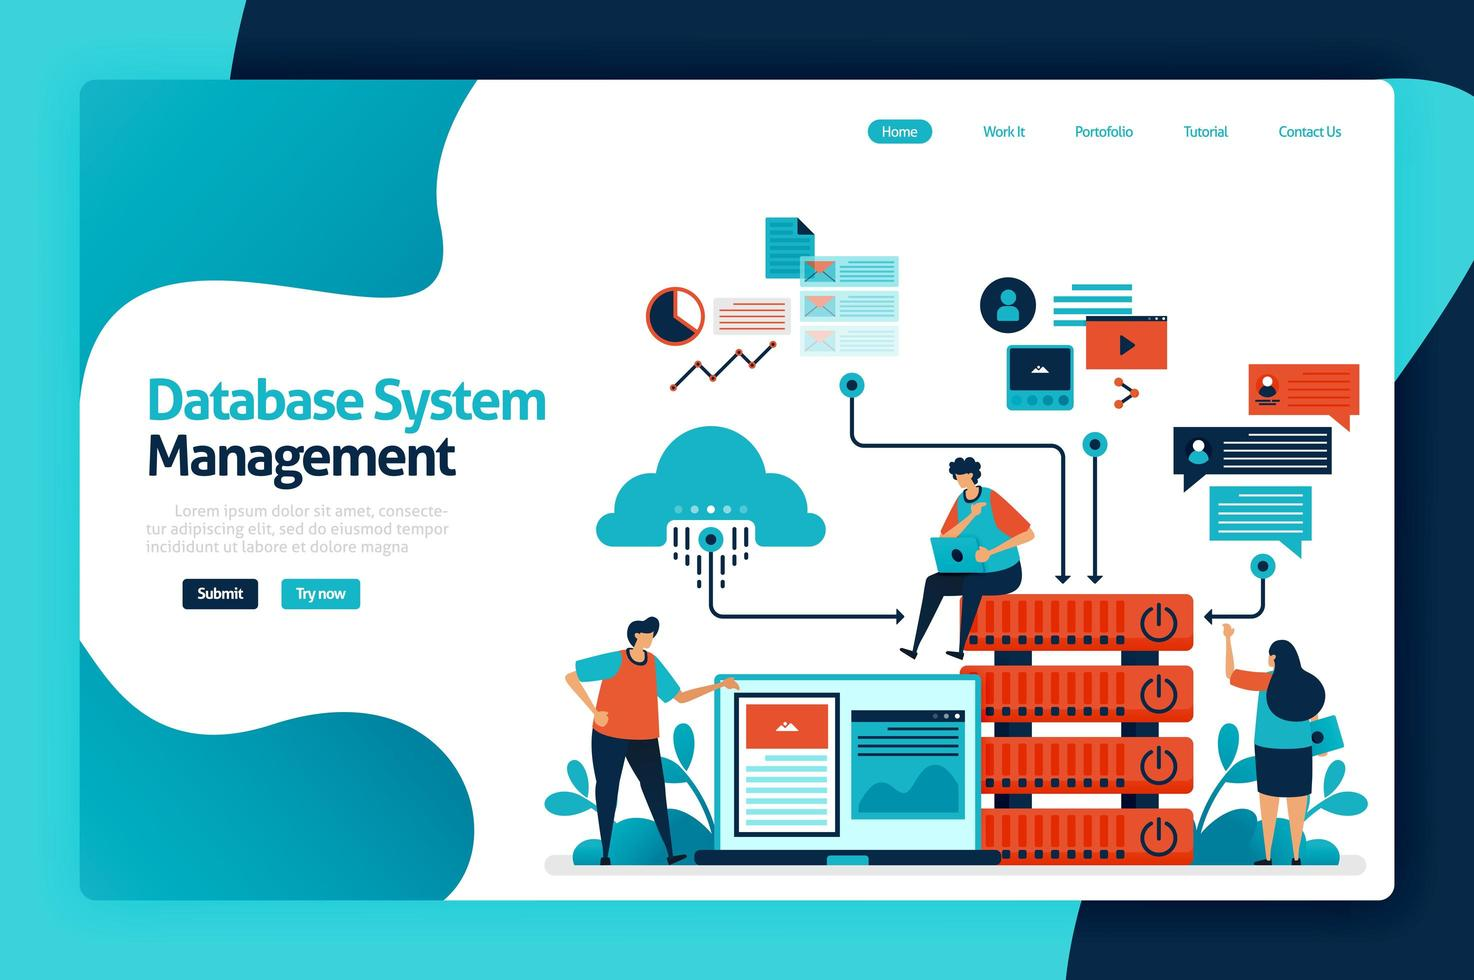 Database system management landing page design. manage, control and manage data access to databases, cloud storage network, chart and graph. vector illustration for poster, website, flyer, mobile app